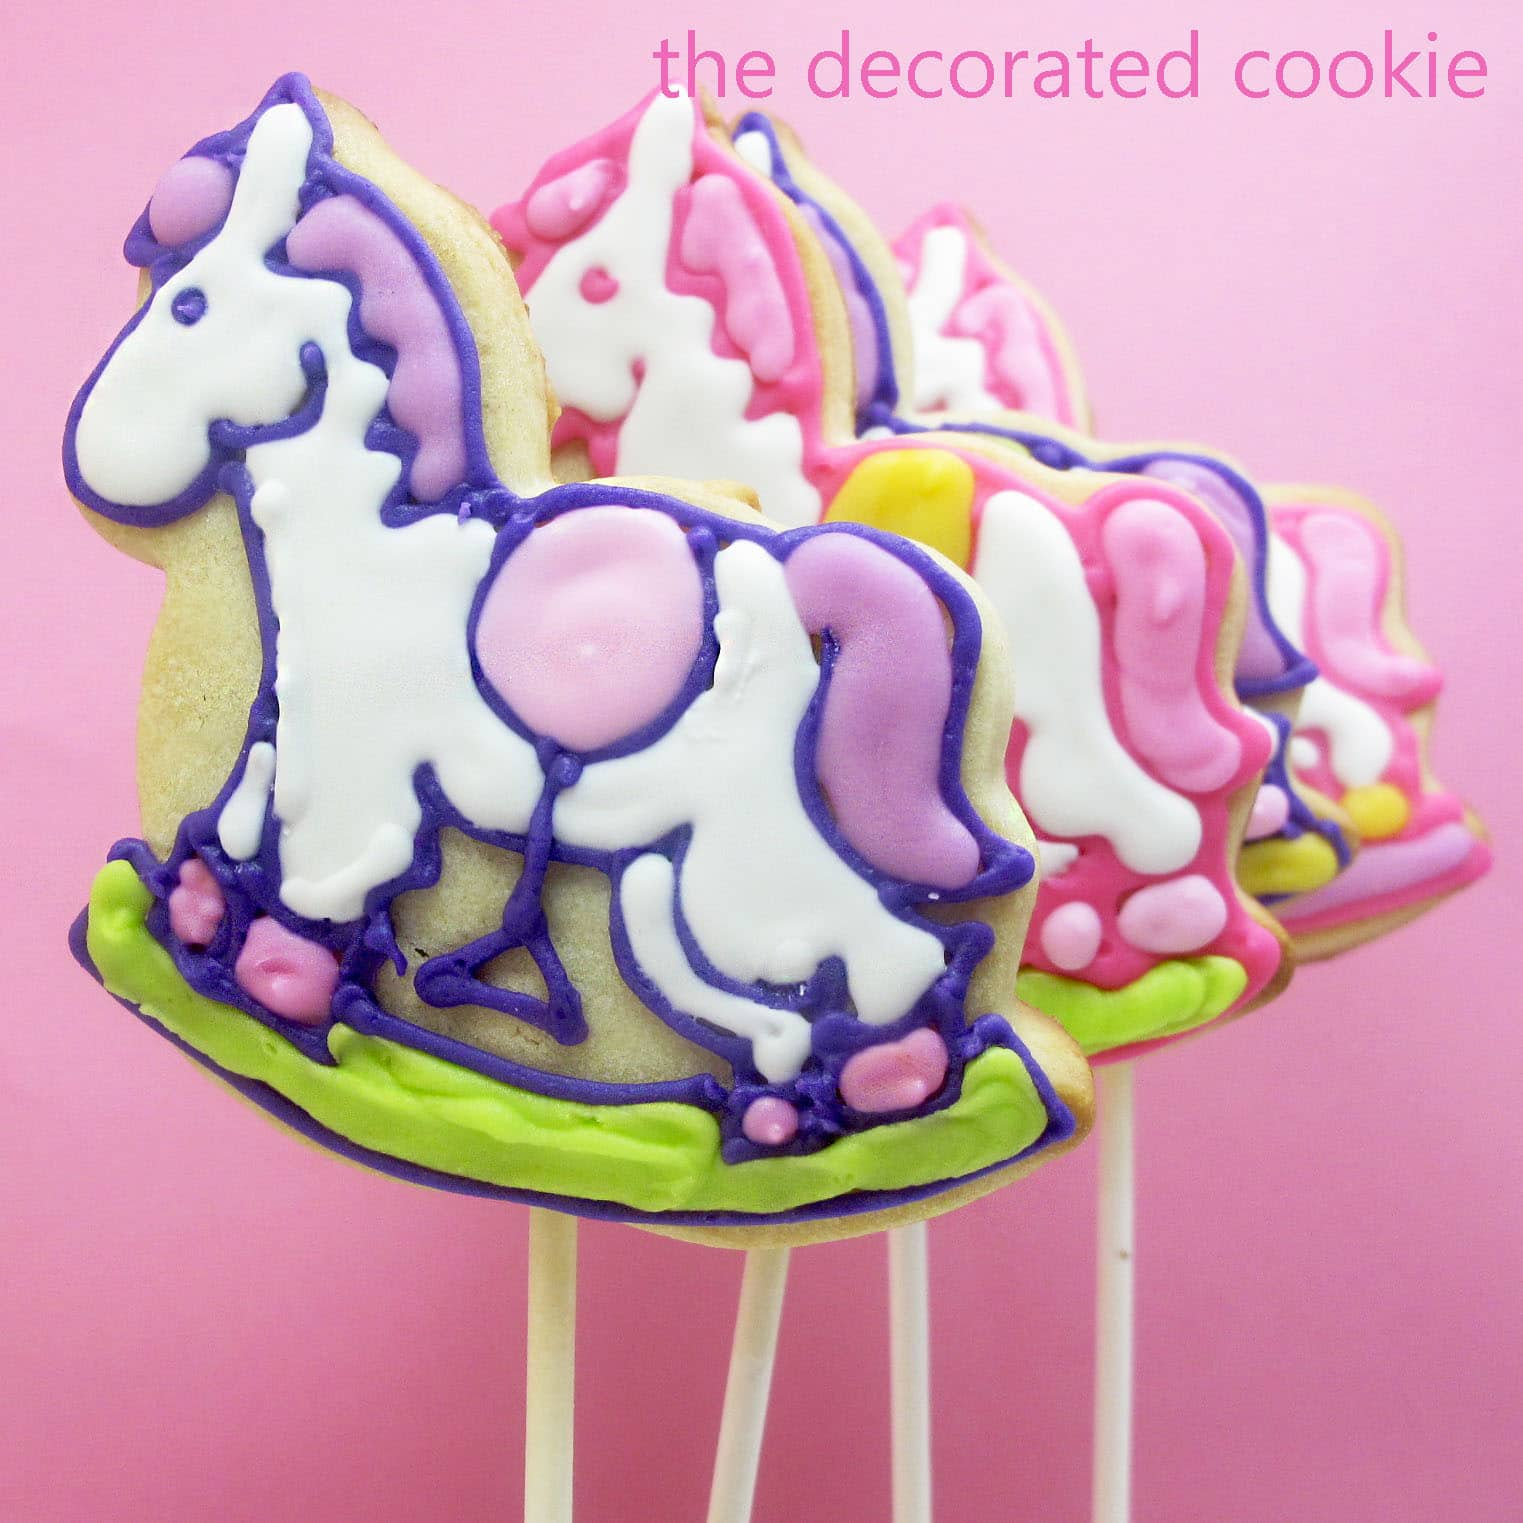 How To Decorate Baby Shower Cookies The Decorated Cookie